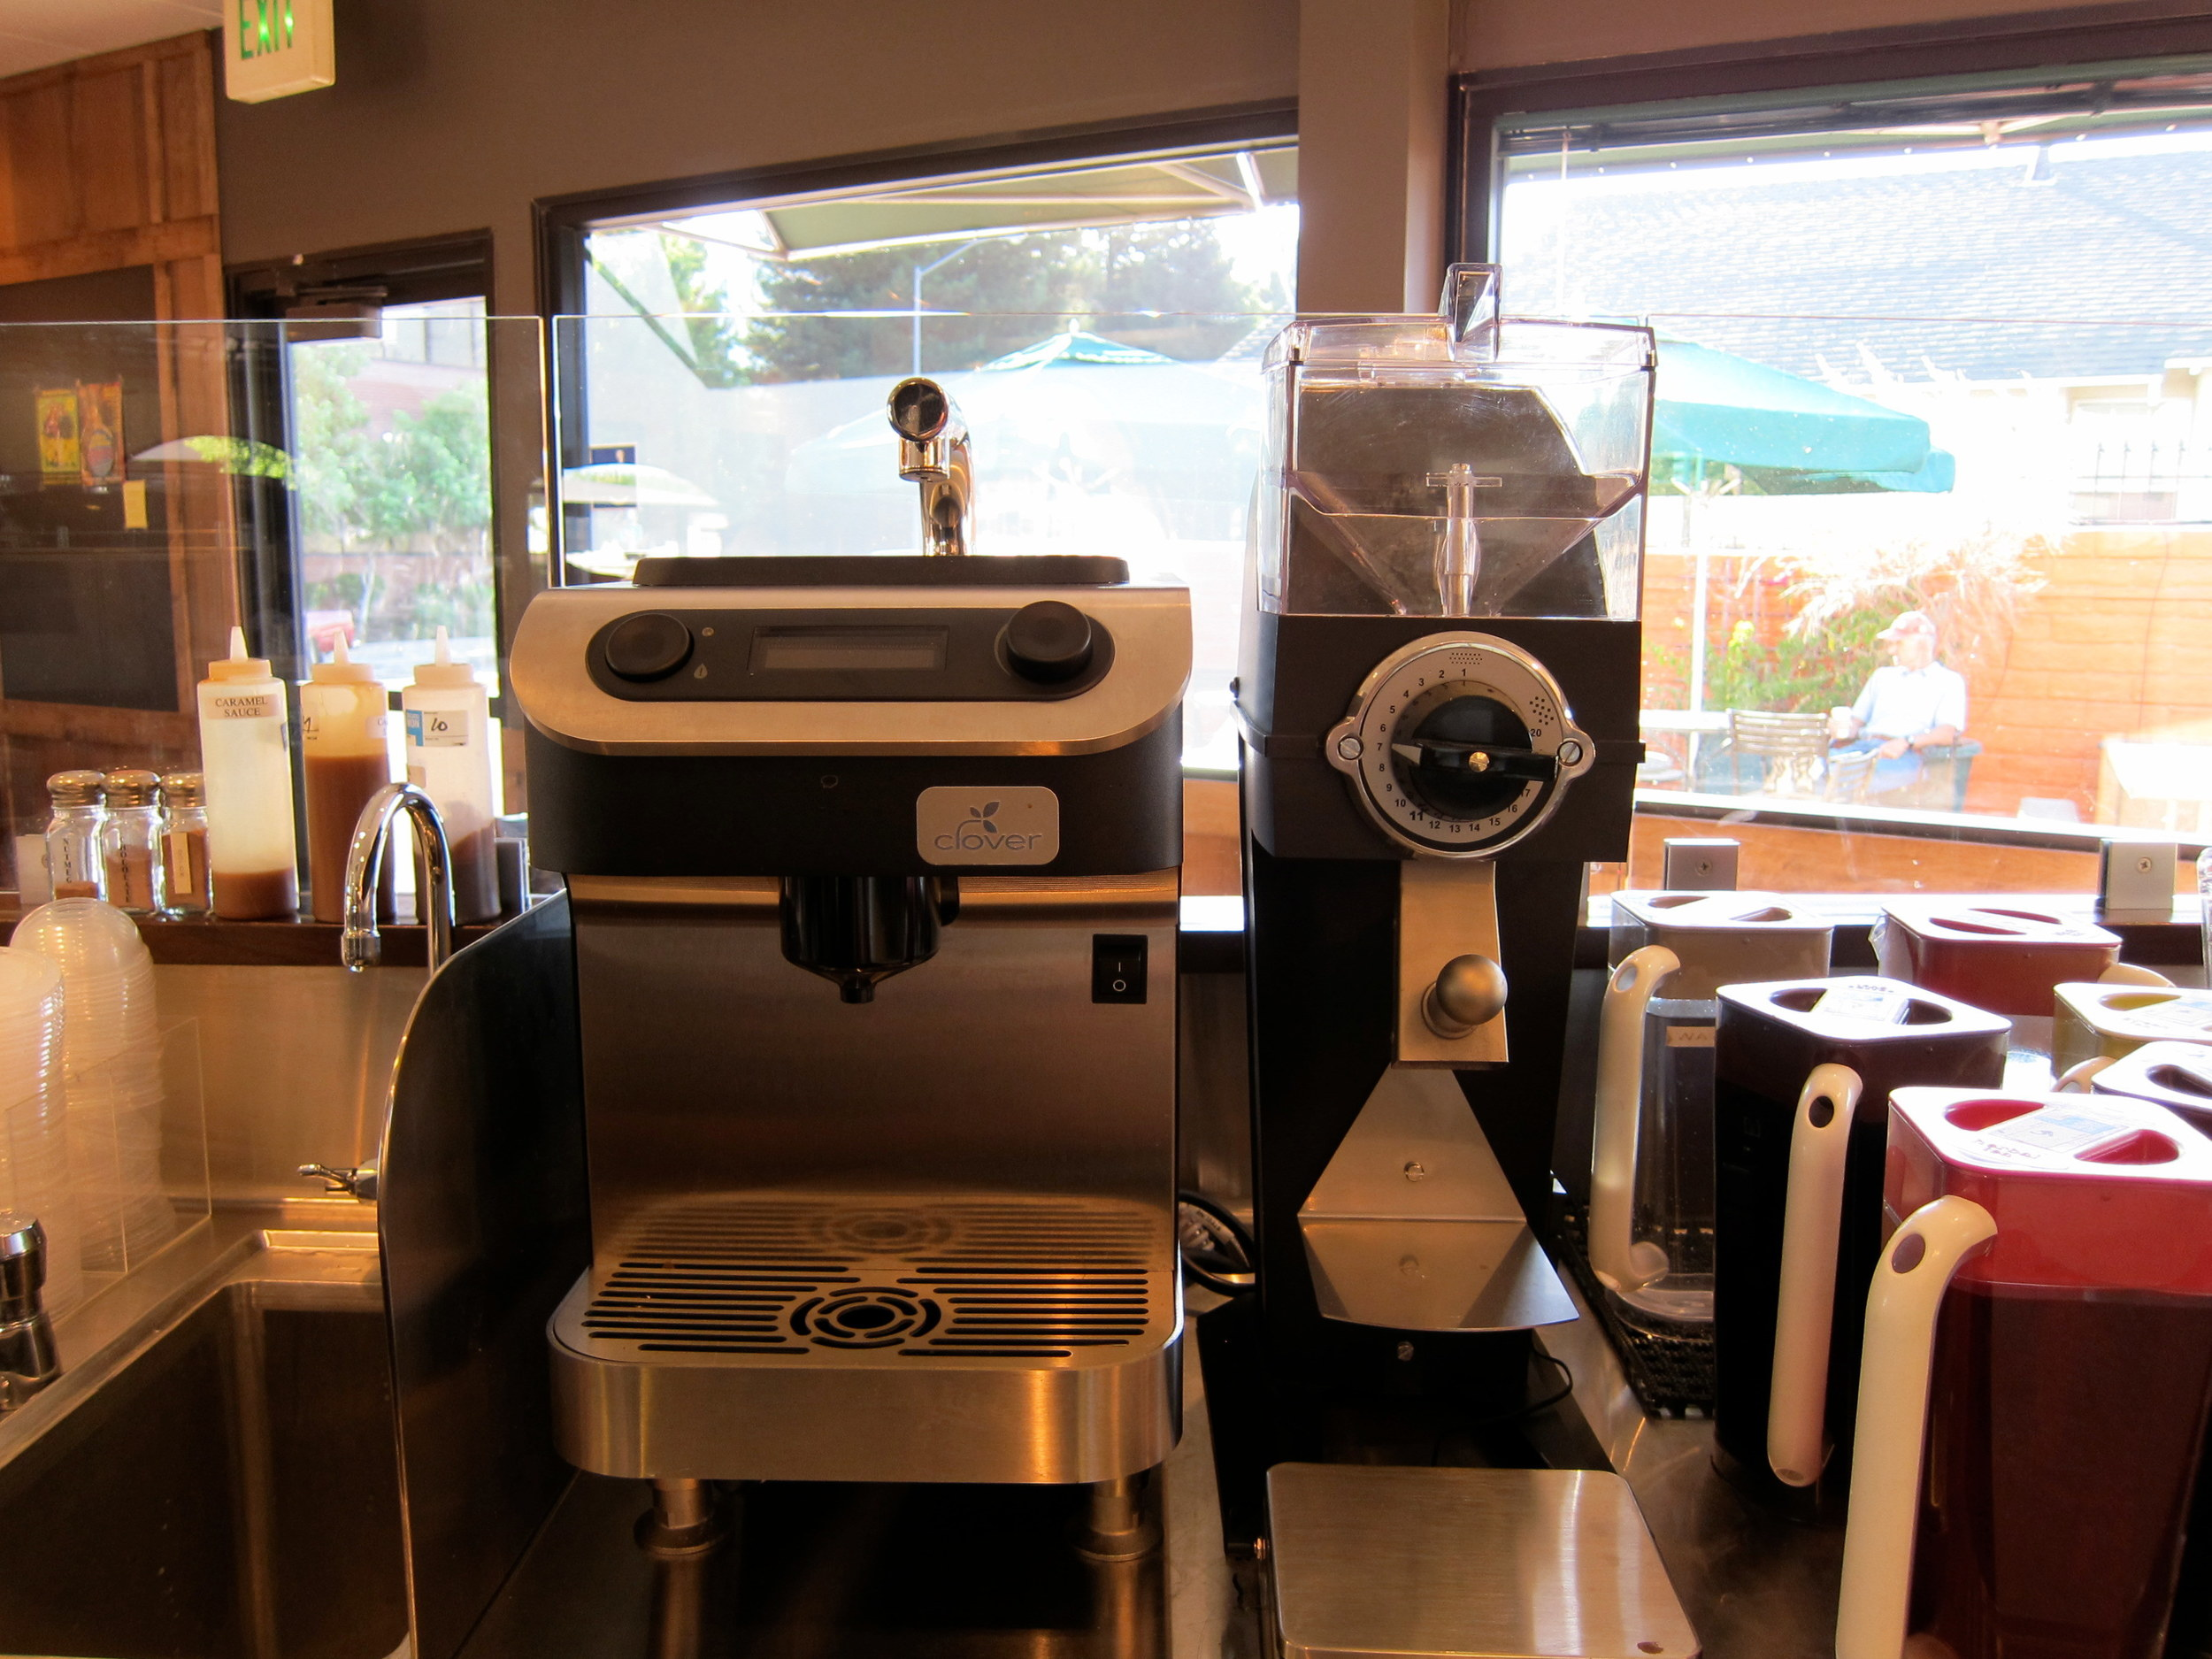 Clover coffee machine